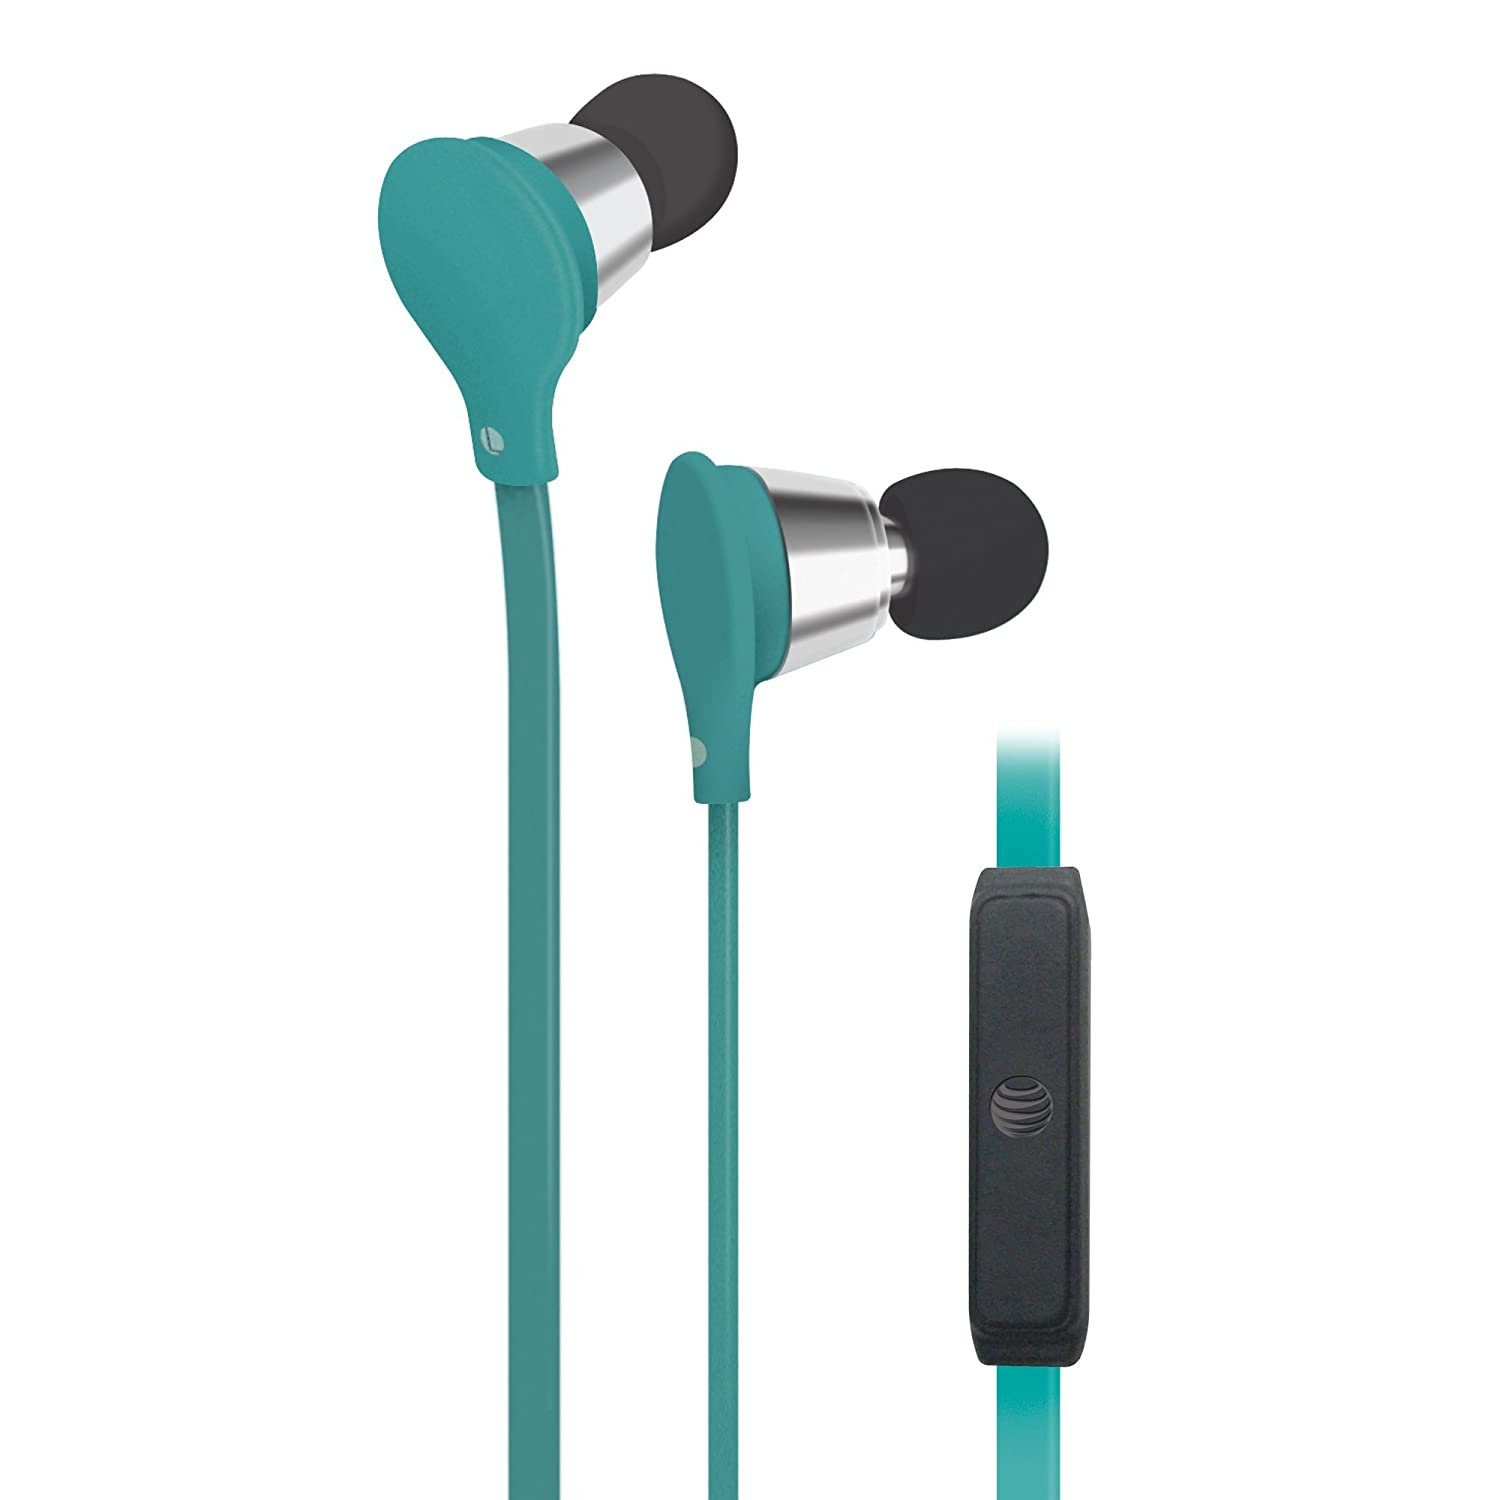 Amazon.com: AT&T Jive Music + Calls Stereo Headphones - Turqoise ...